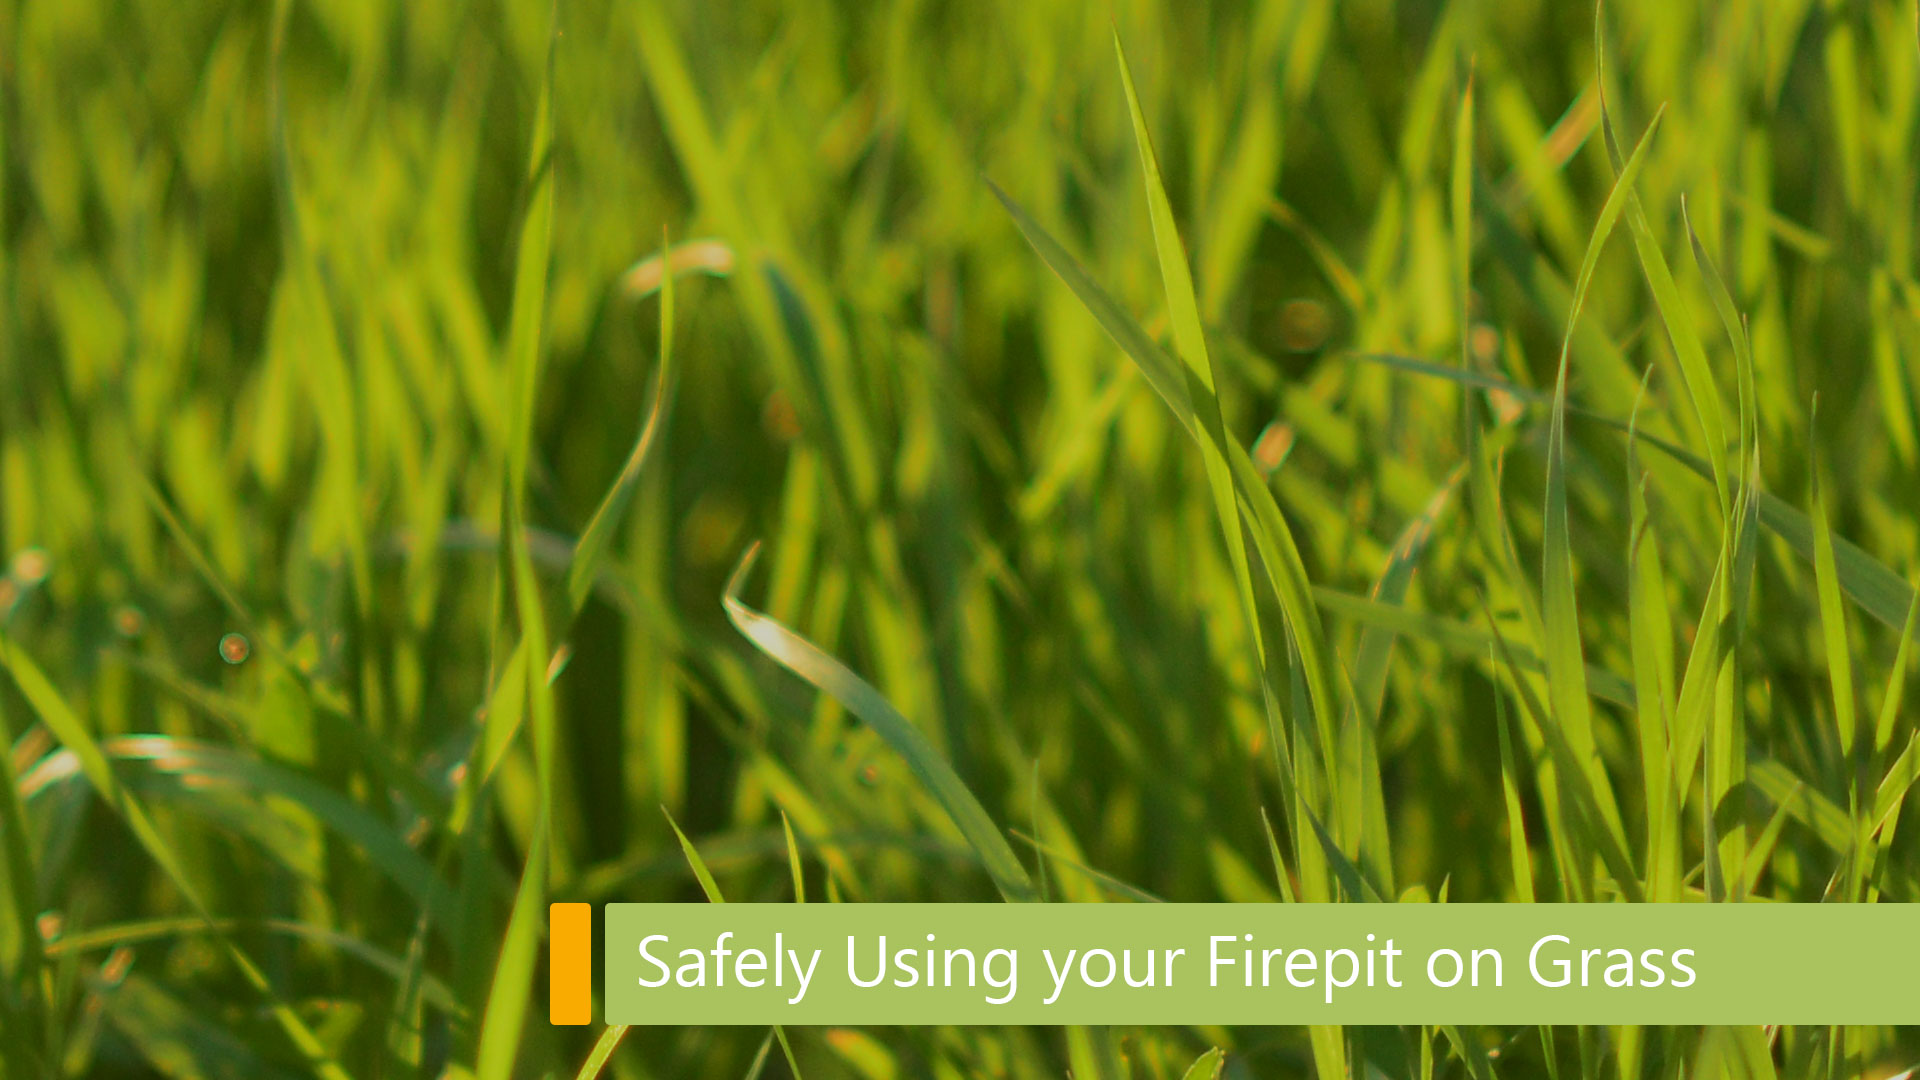 safely using your firepit on grass main image